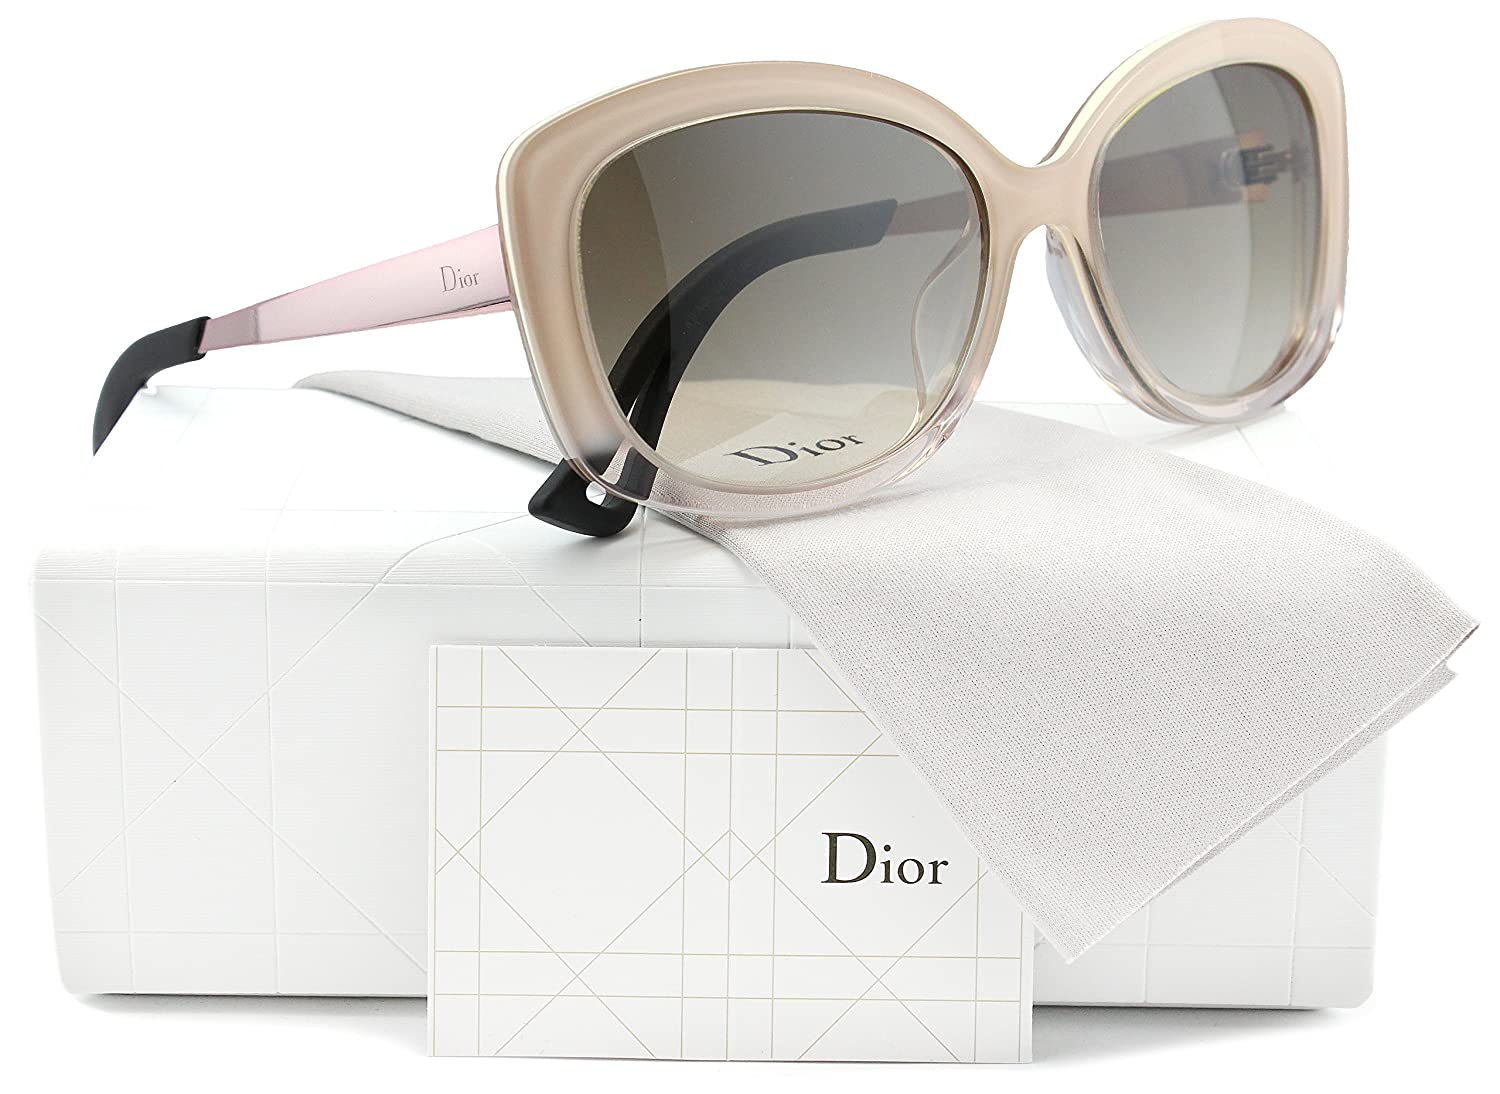 Amazon.com: Christian Dior Extase 2/S - Gafas de sol, color ...